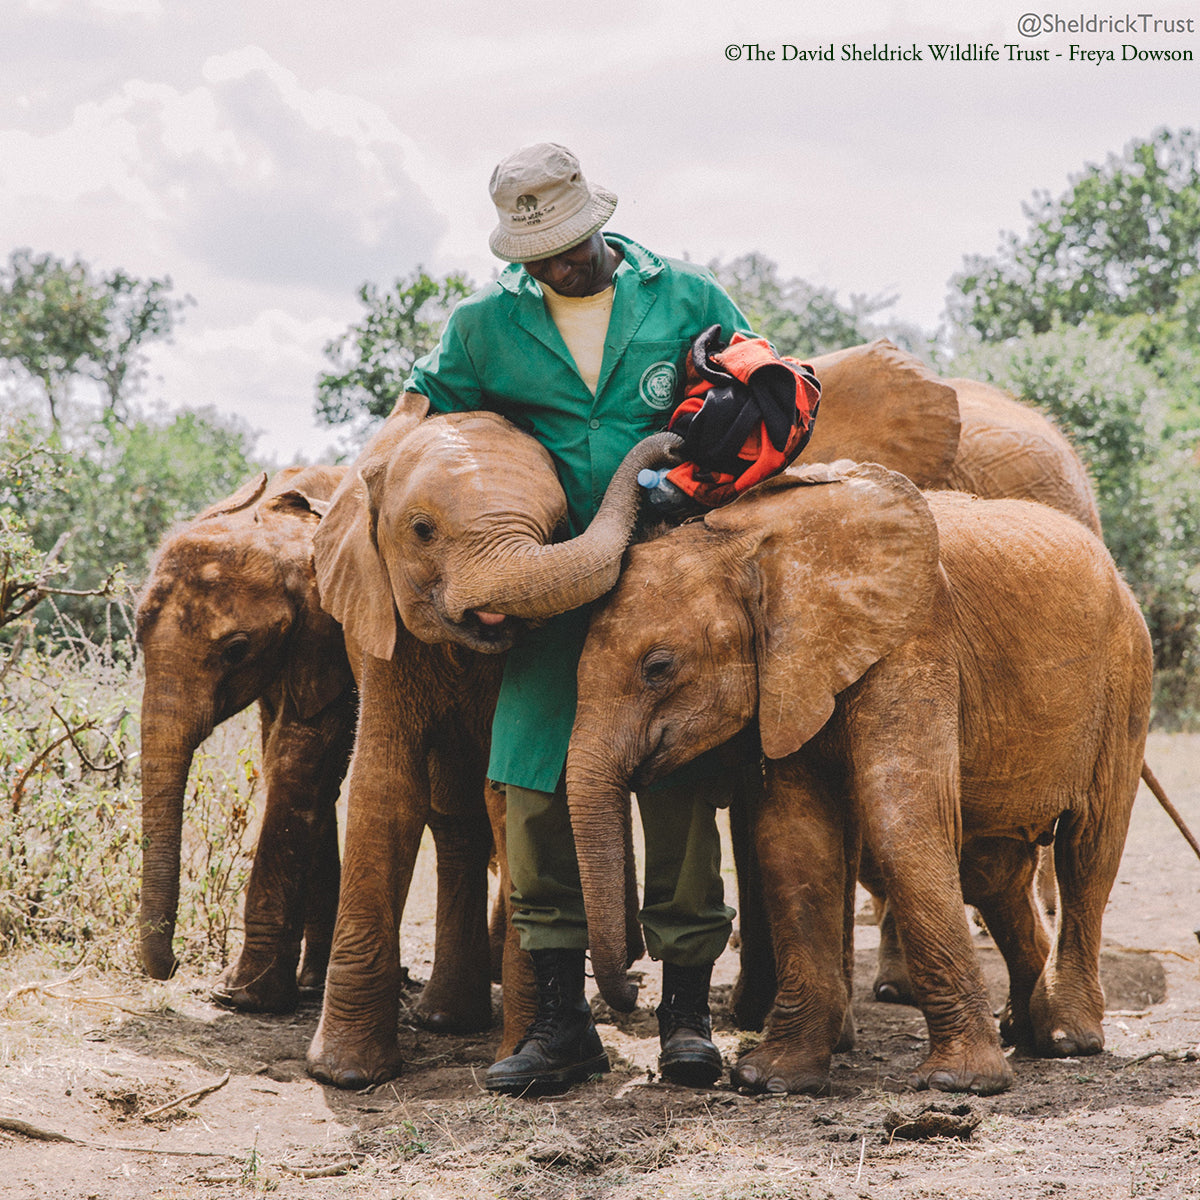 © The David Sheldrick Wildlife Trust / Freya Dowson